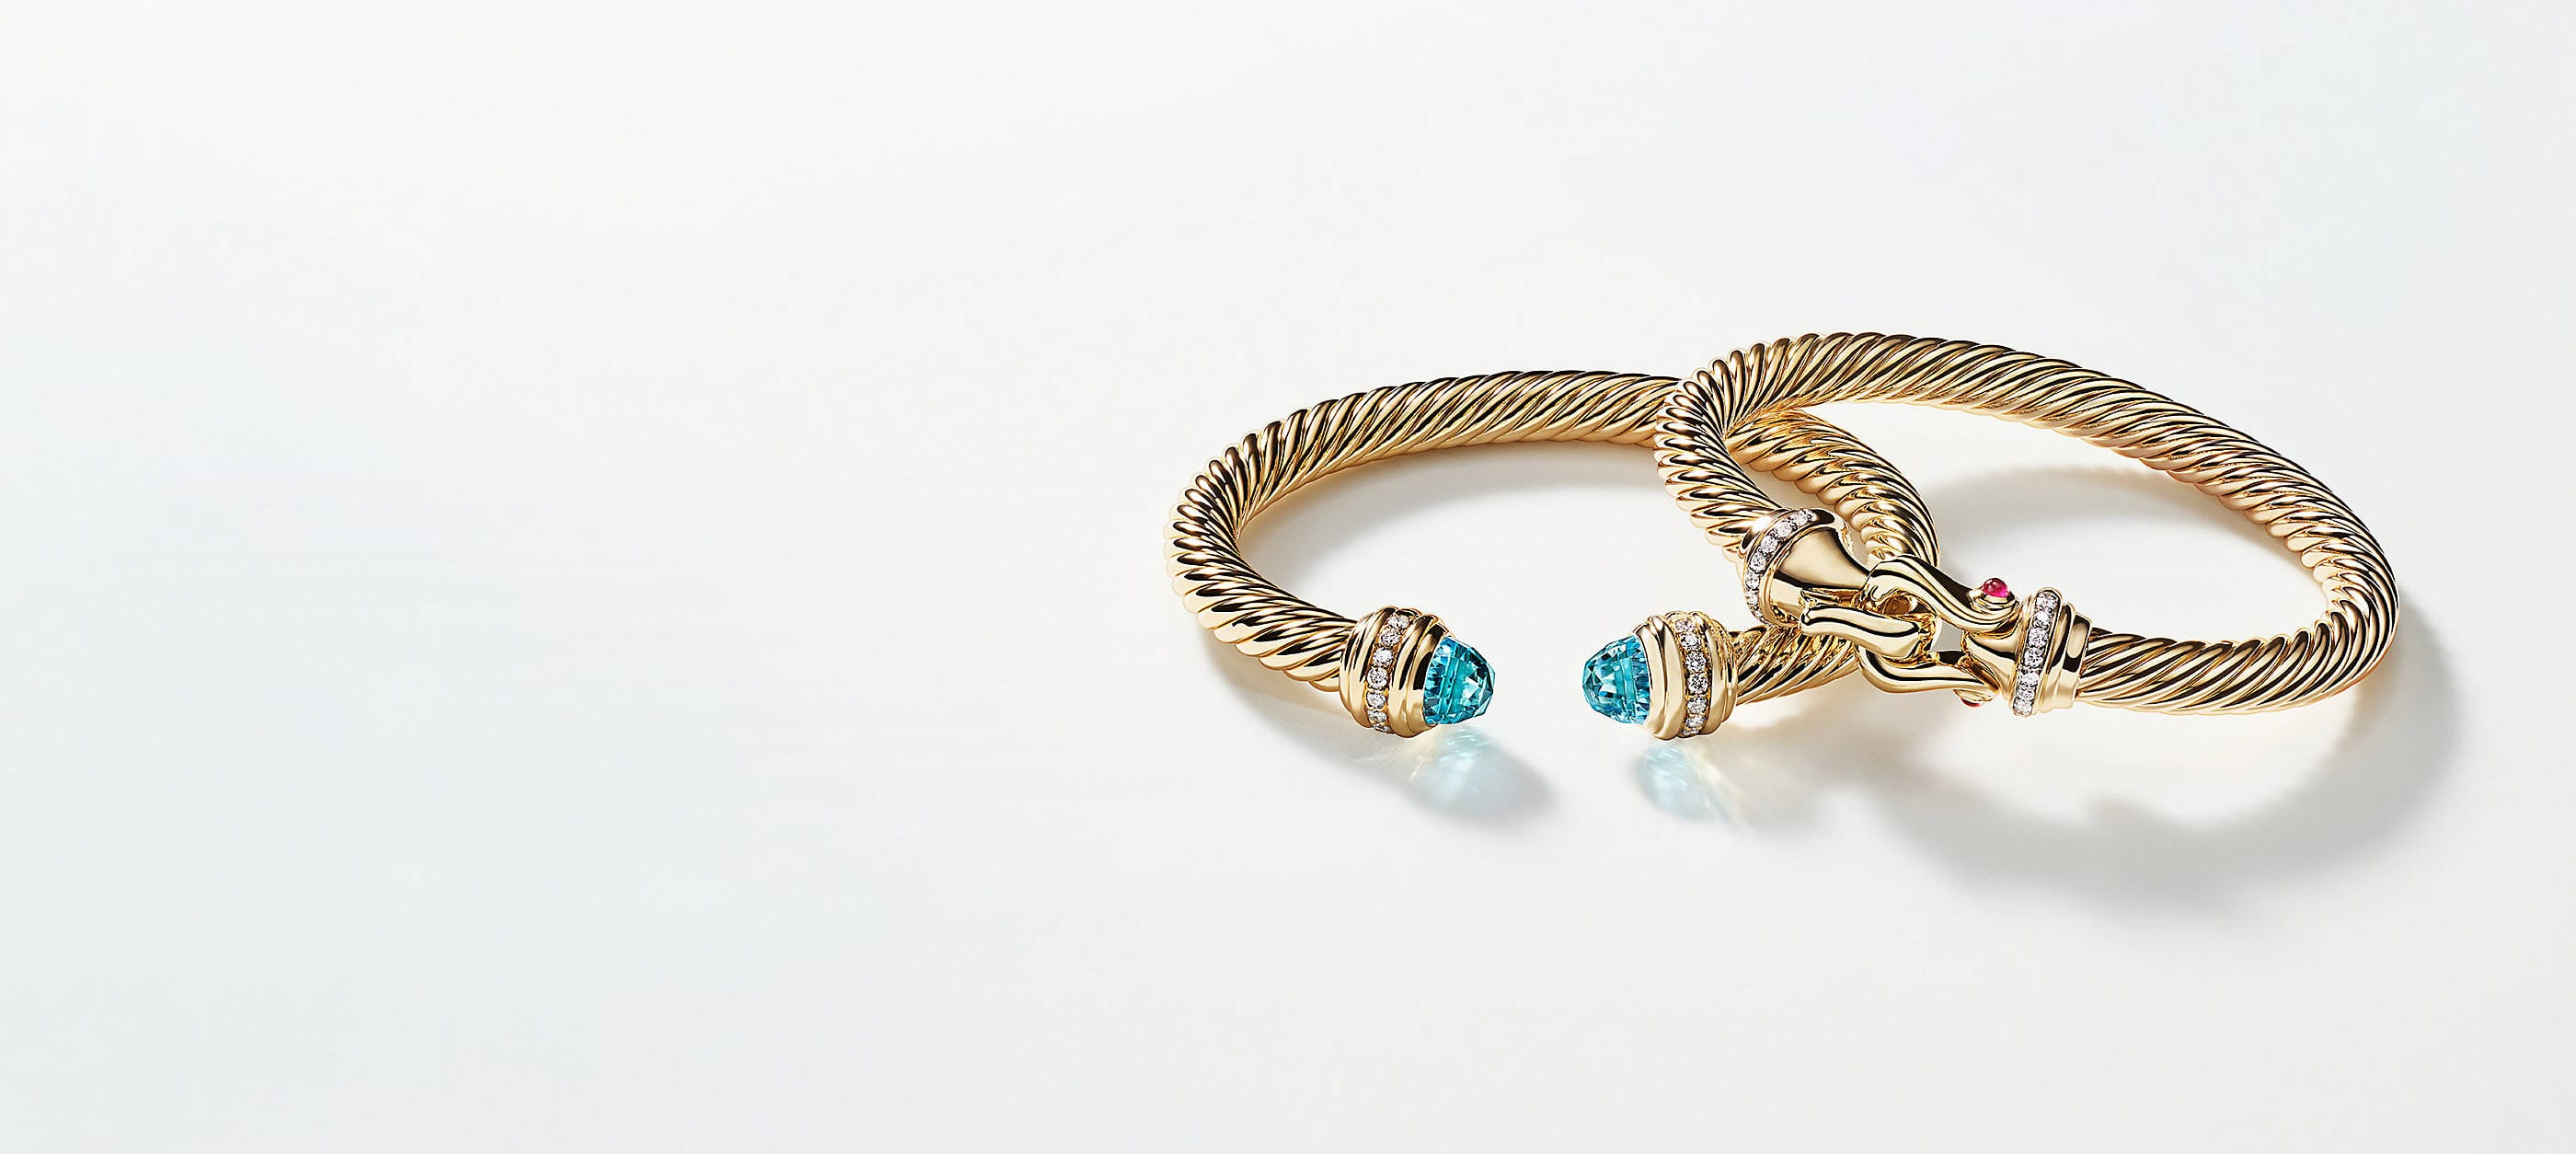 Two David Yurman Cable bracelets slightly overlapped atop a white background with soft shadows. The women's jewelry is crafted from 18K yellow gold with pavé diamonds. The bracelet on the left features blue topazes at the ends while the other bracelet is accented with rubies near its center buckle.